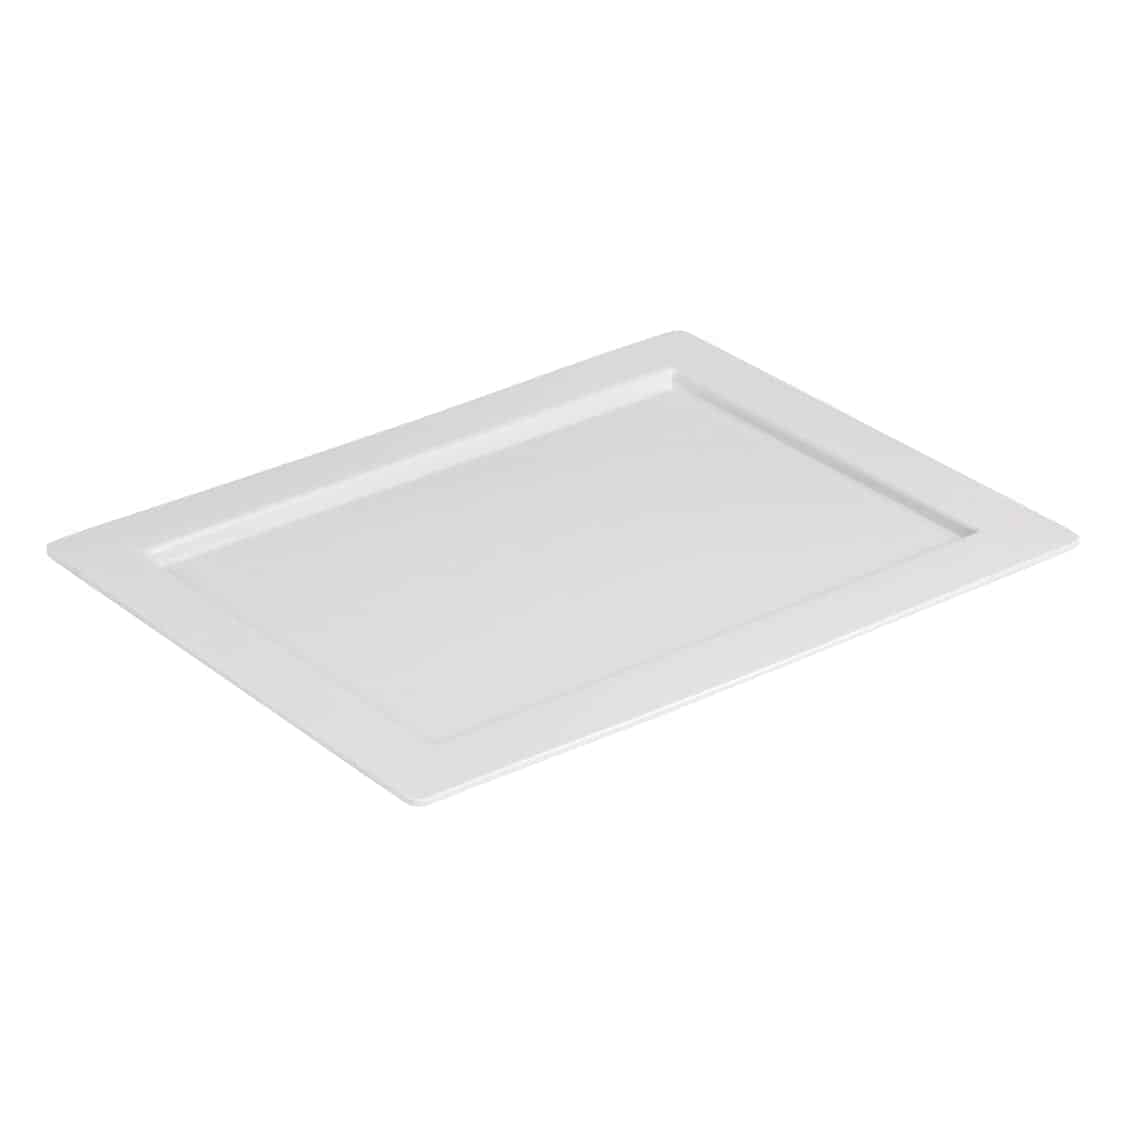 ABS top tray 2